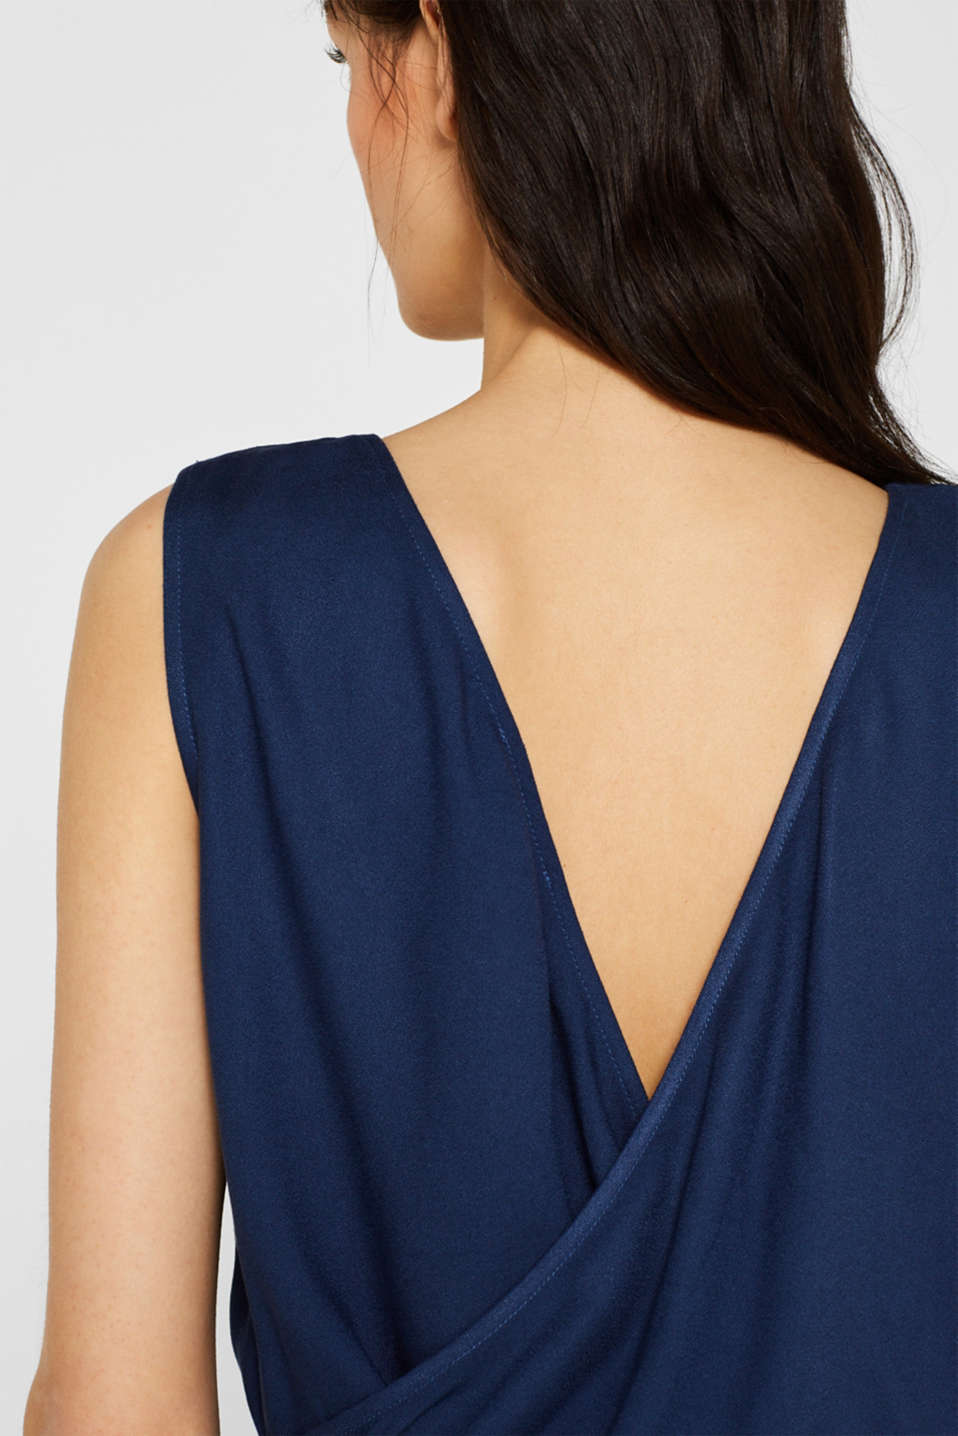 Jumpsuit with a wide leg and rear cut-out, NAVY, detail image number 2